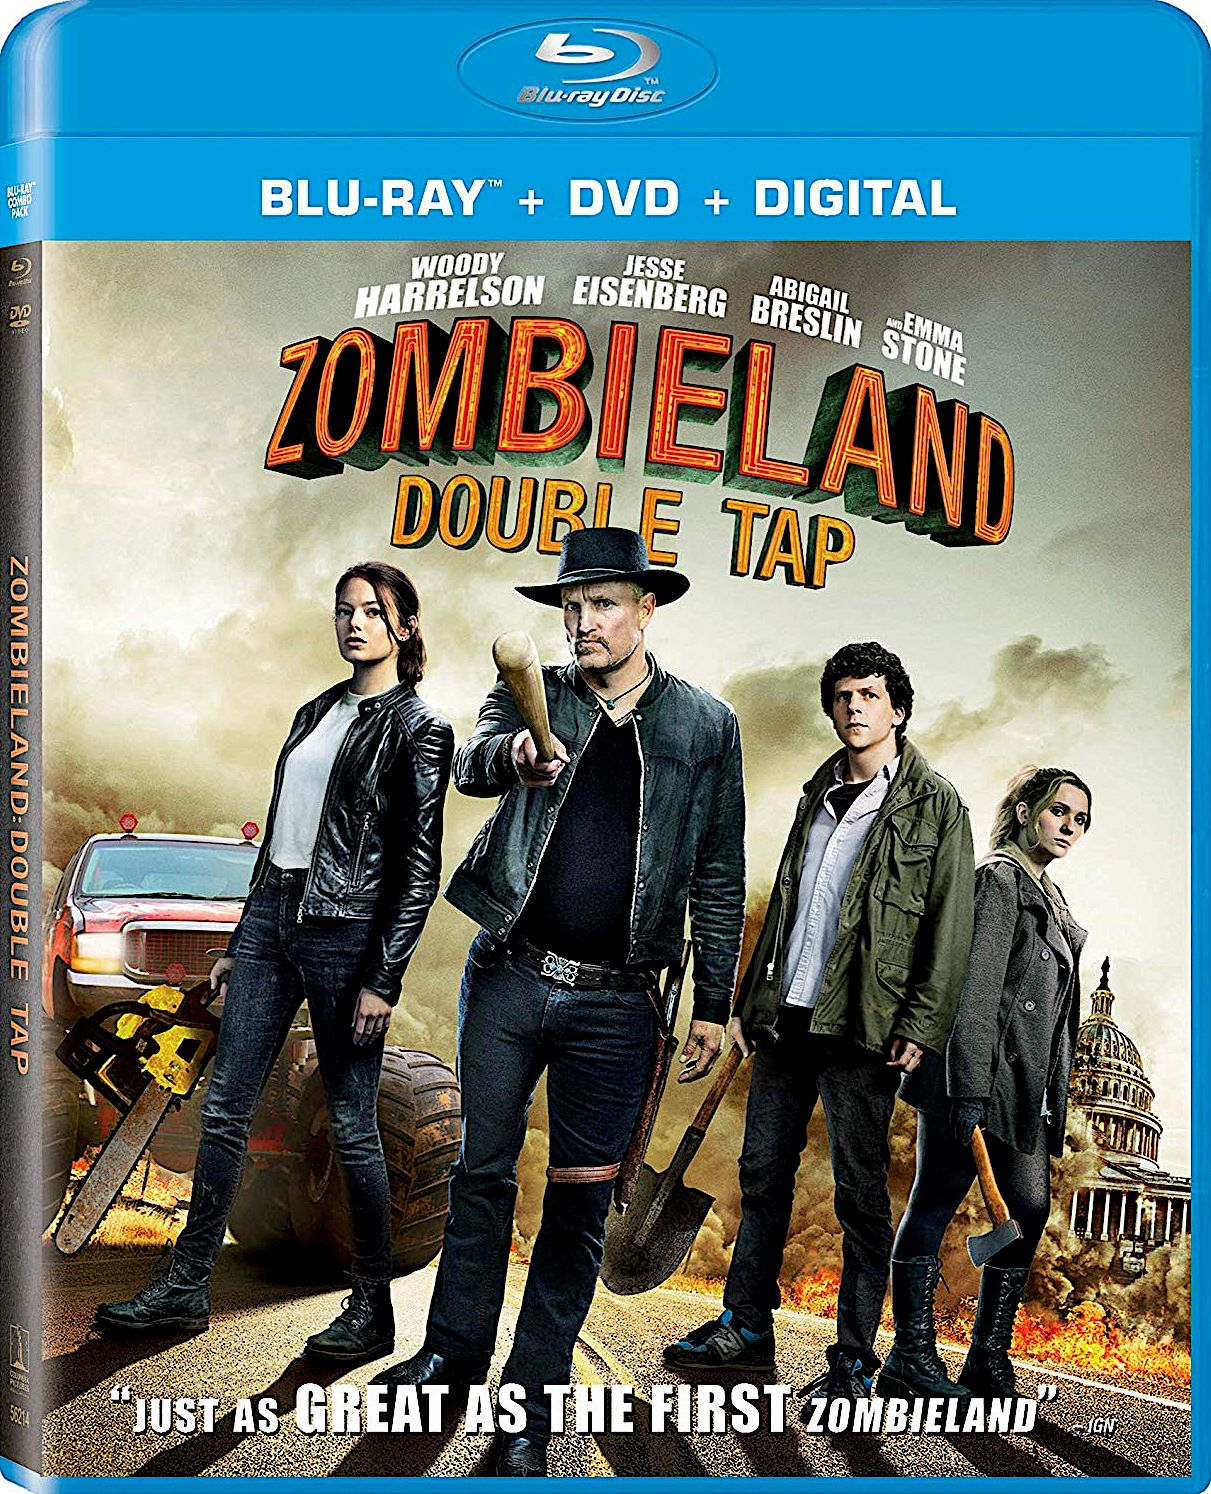 Zombieland Double Tap Blu Ray Sony Pictures Zombieland Double Tap Blu Ray